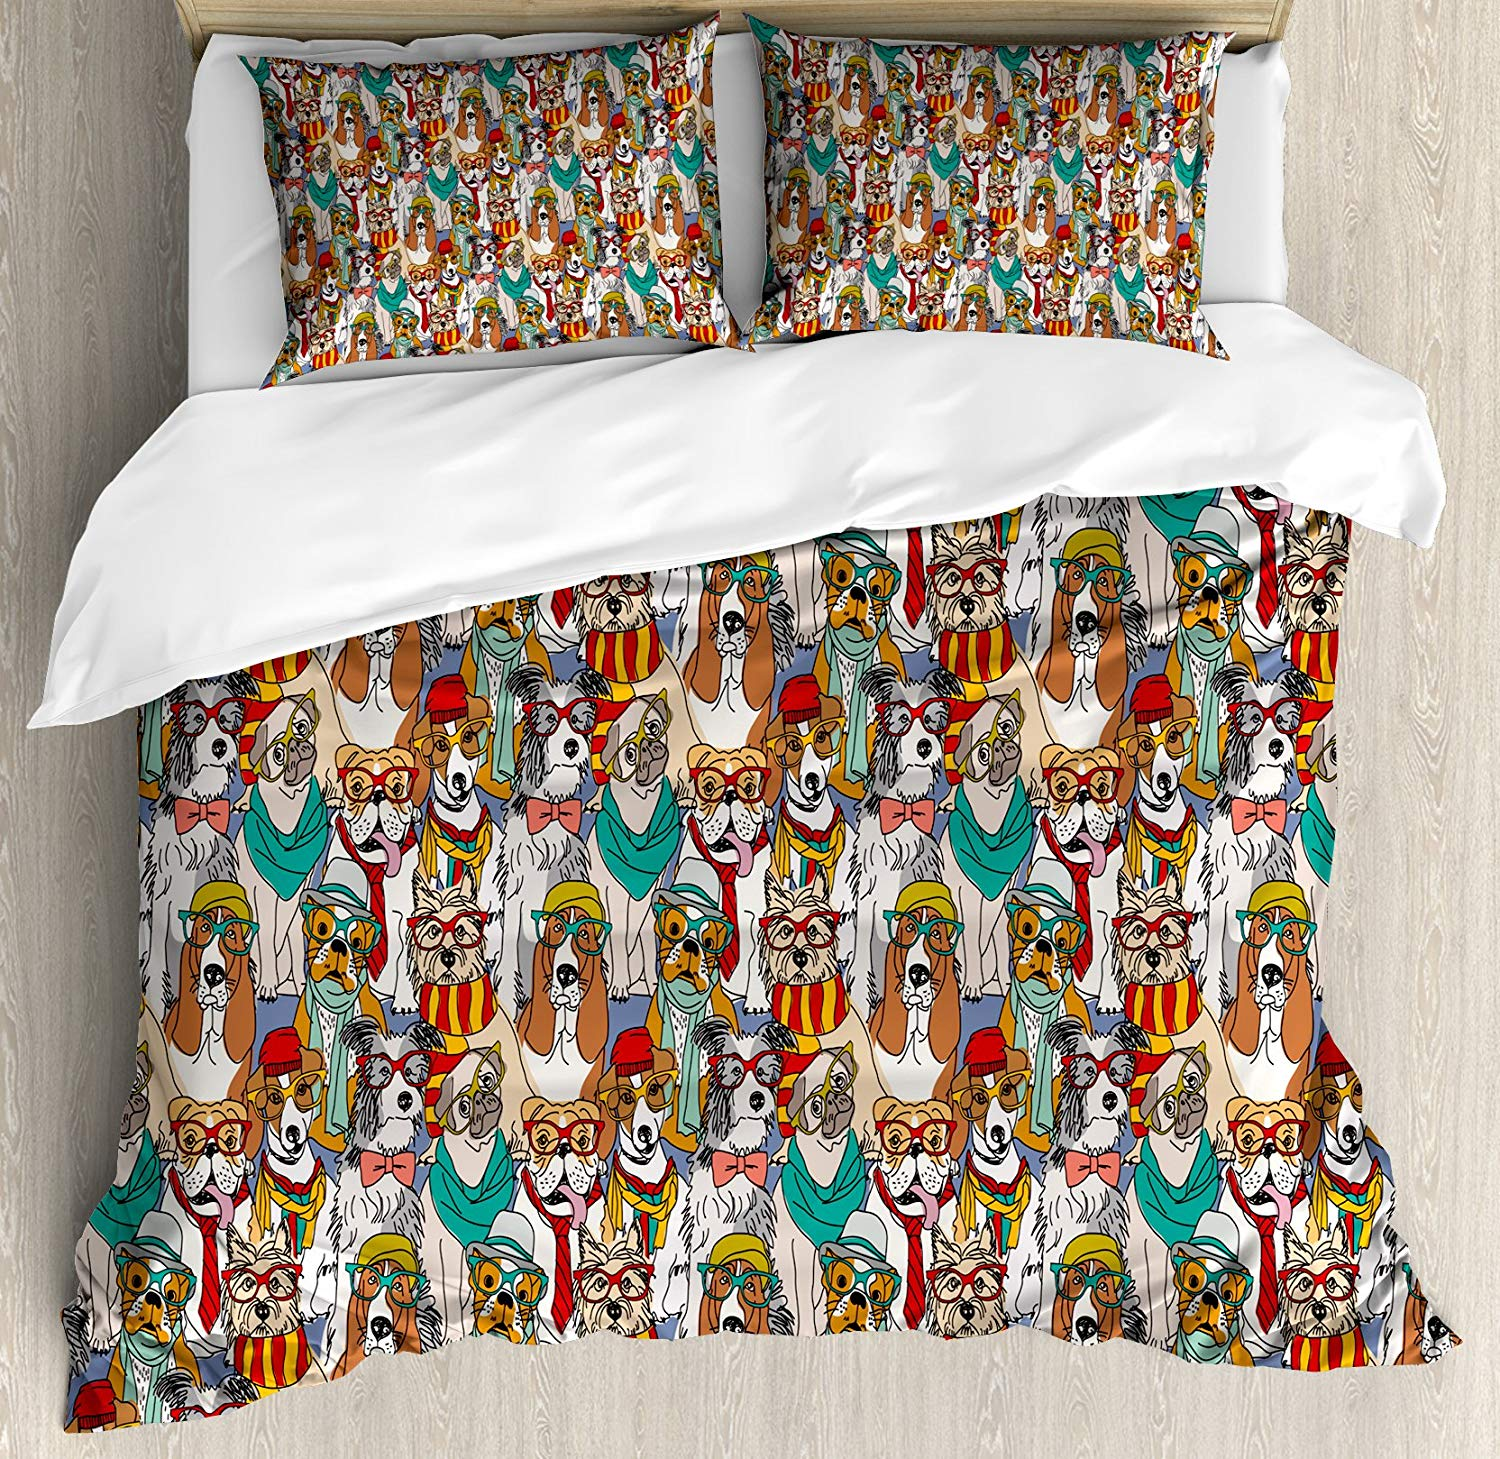 Dog Duvet Cover Set Hipster Bulldog Schnauzer Pug Breeds with Glasses Hats Scarf Pattern Colorful Cartoon Decorative 3 Piece Bed|Duvet Cover| |  - title=